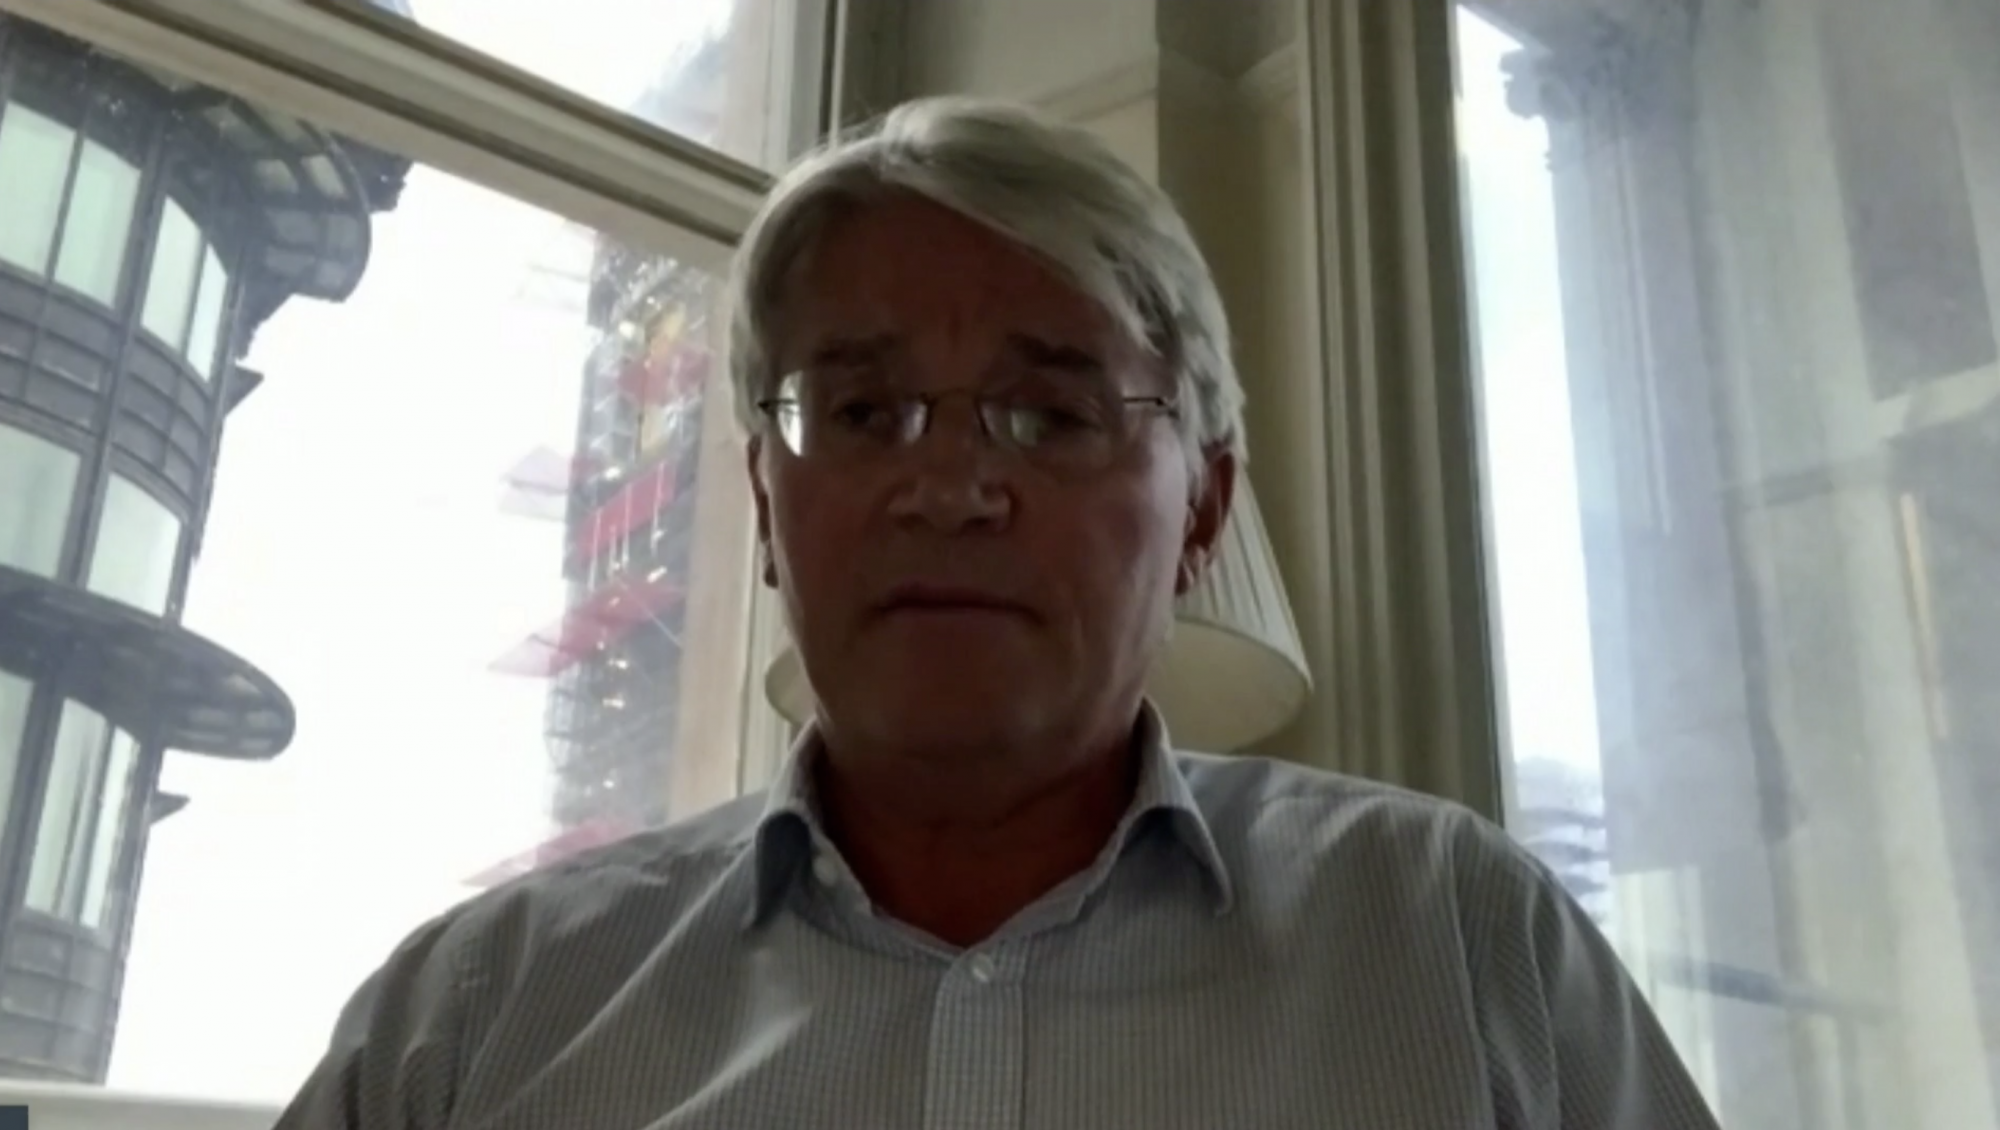 People must show 'social solidarity' – Tory MP Andrew Mitchell - channel 4